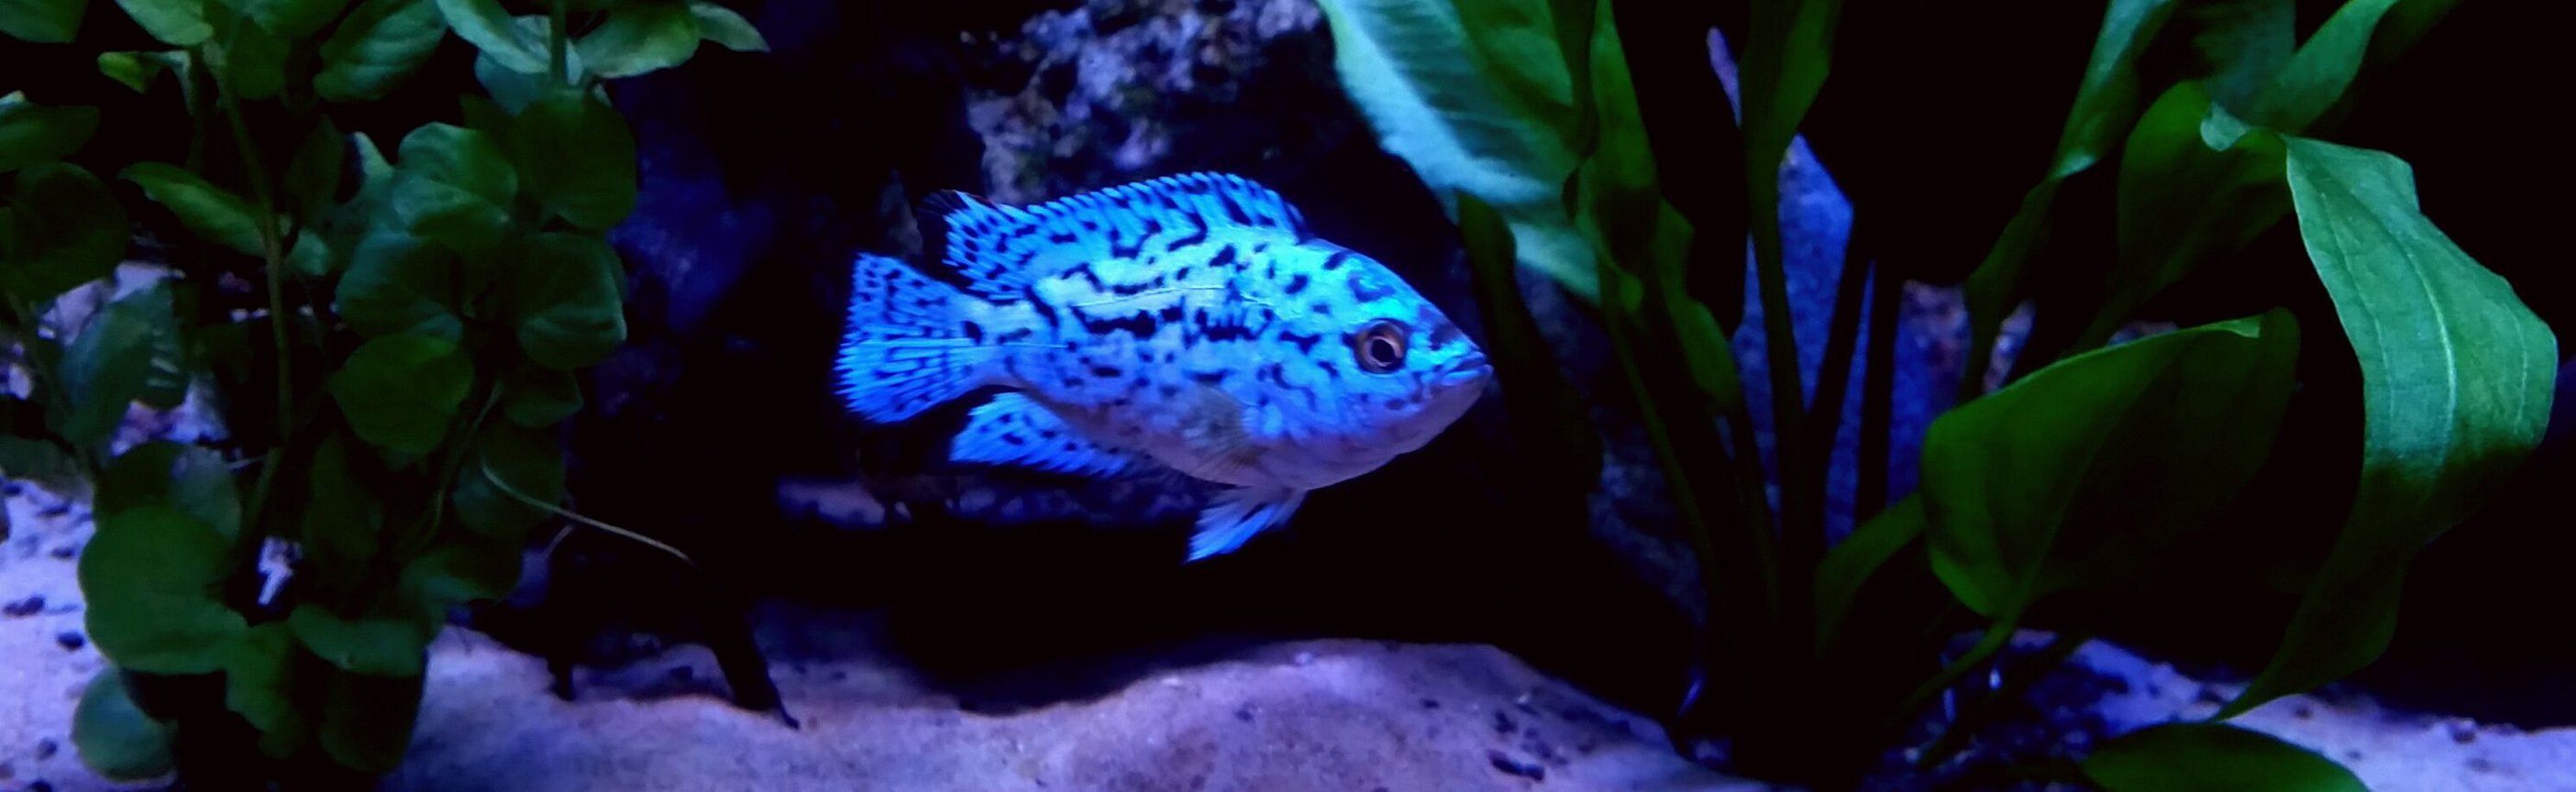 freshwater fish stocking in 90 gallons tank - Electric blue jack dempsey